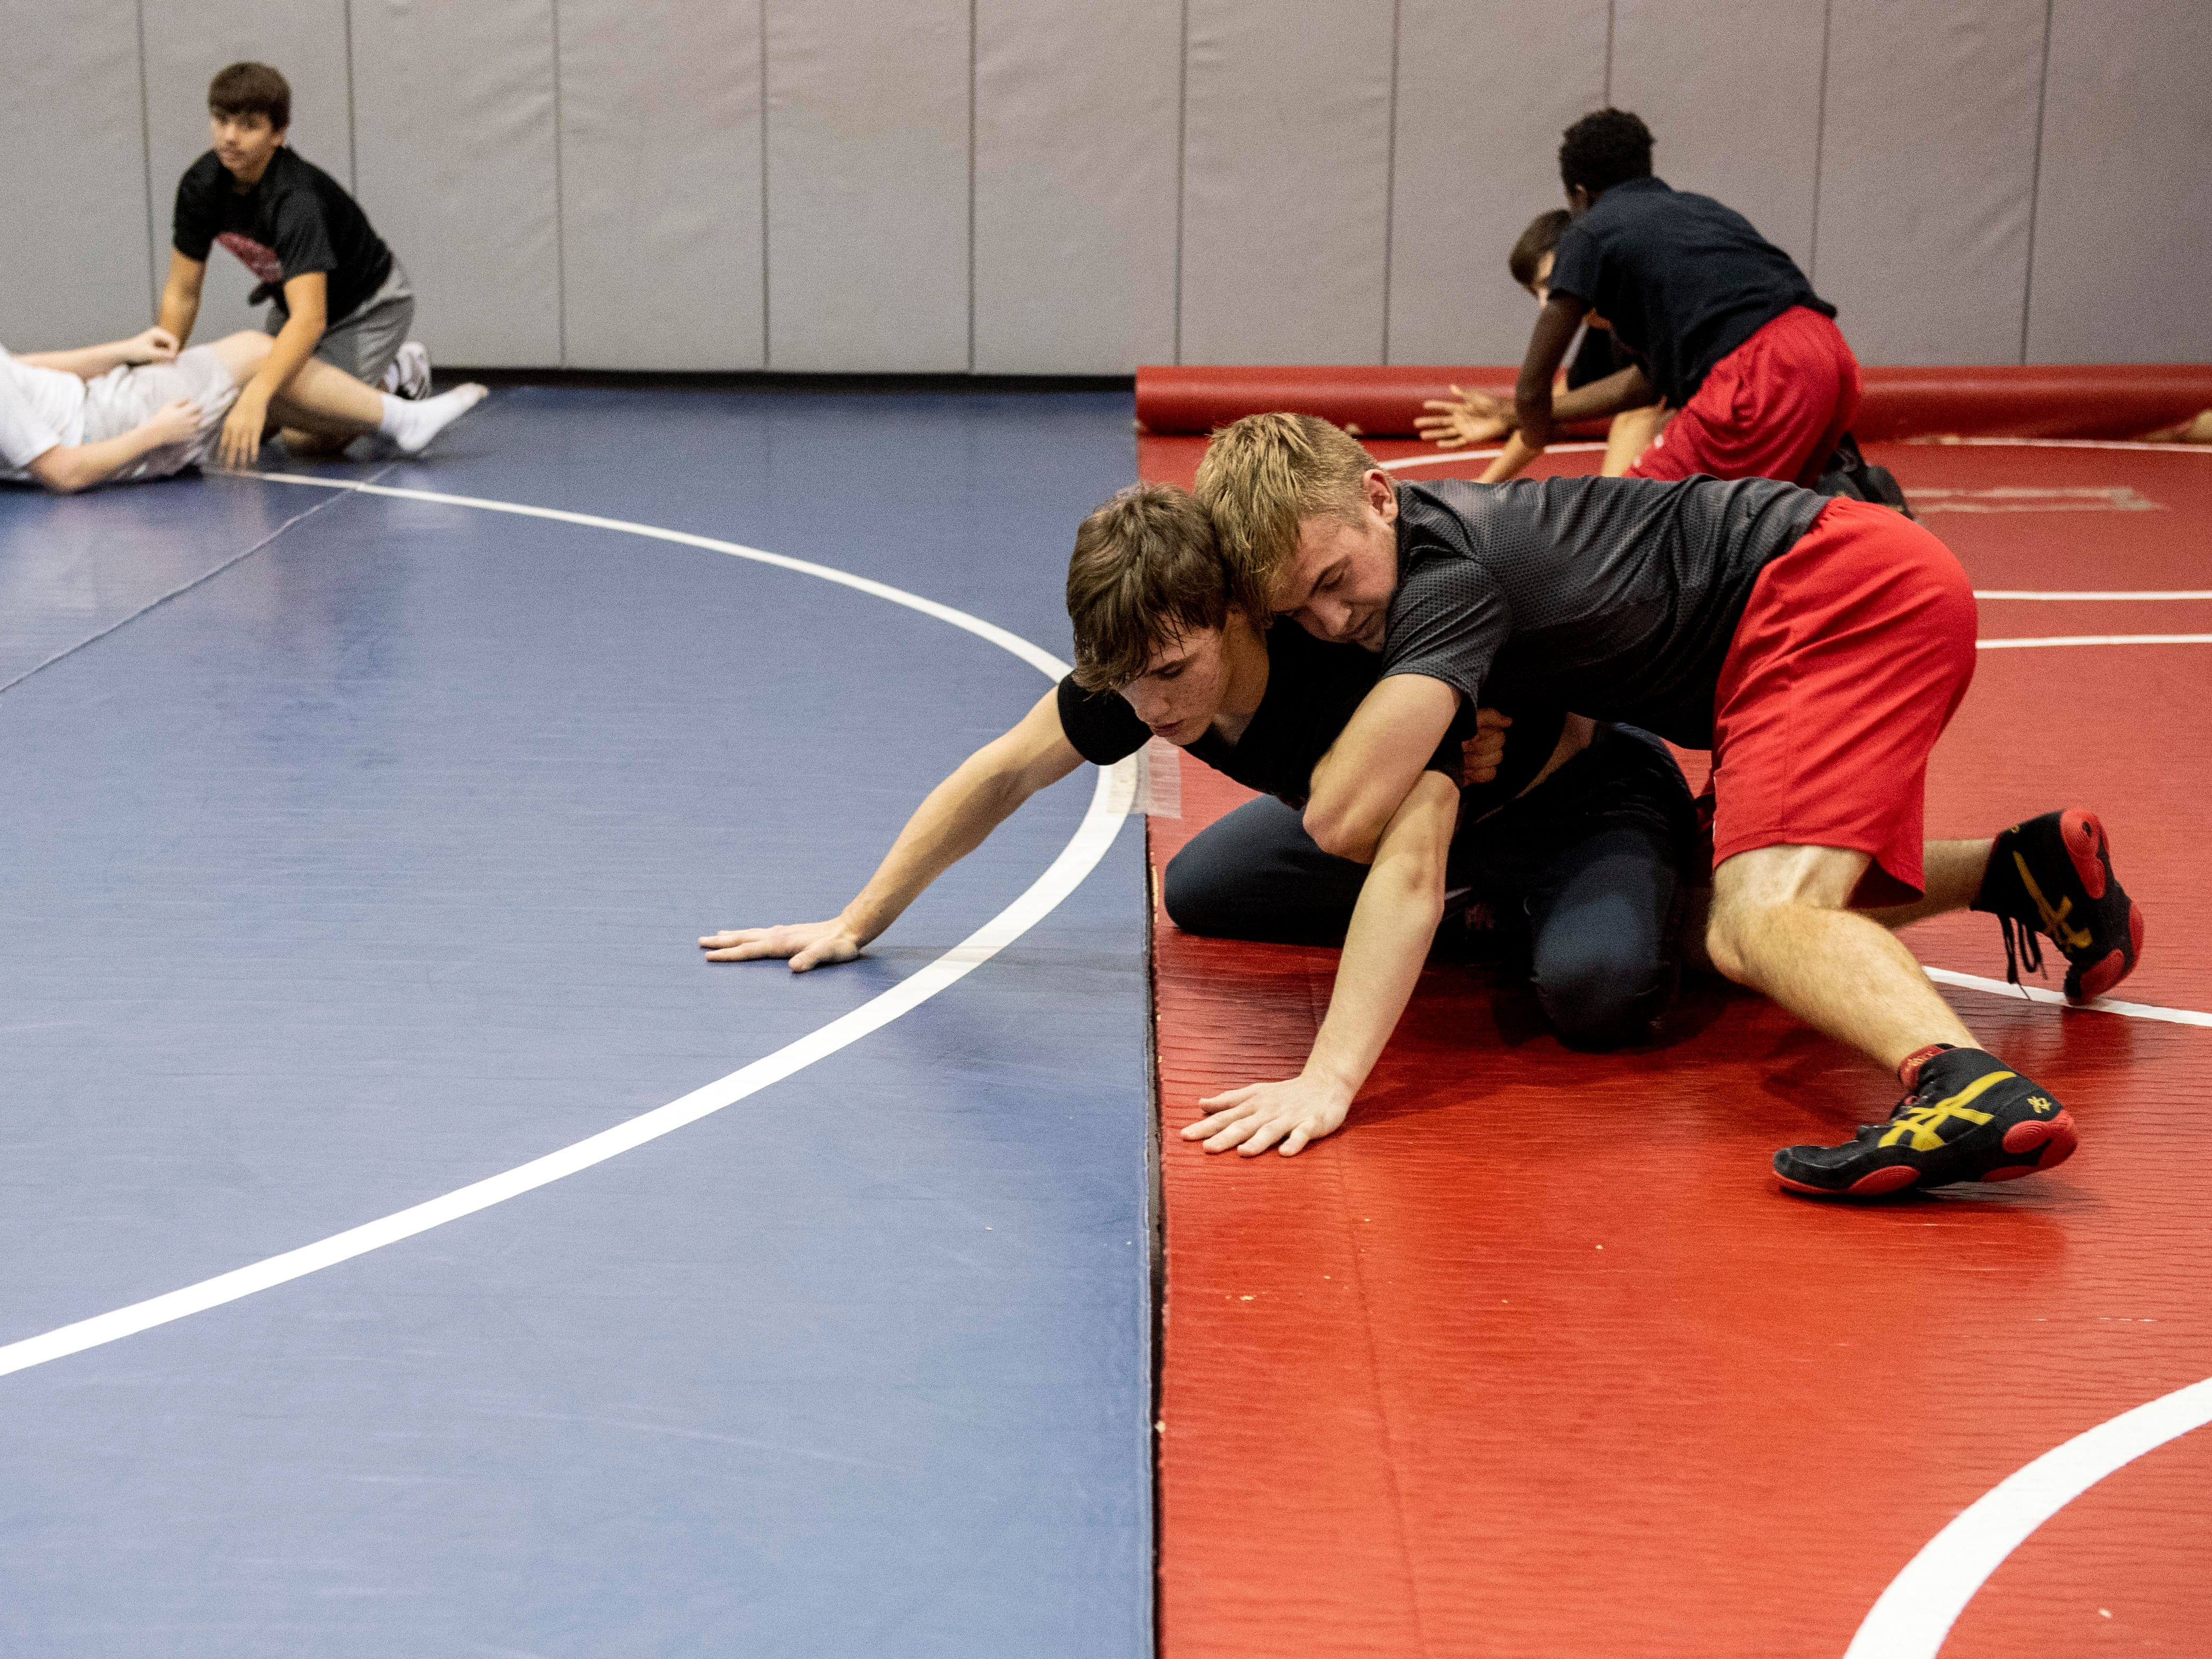 Dover wrestlers practice during the first official day of winter sports practice on Friday, November 16, 2018.